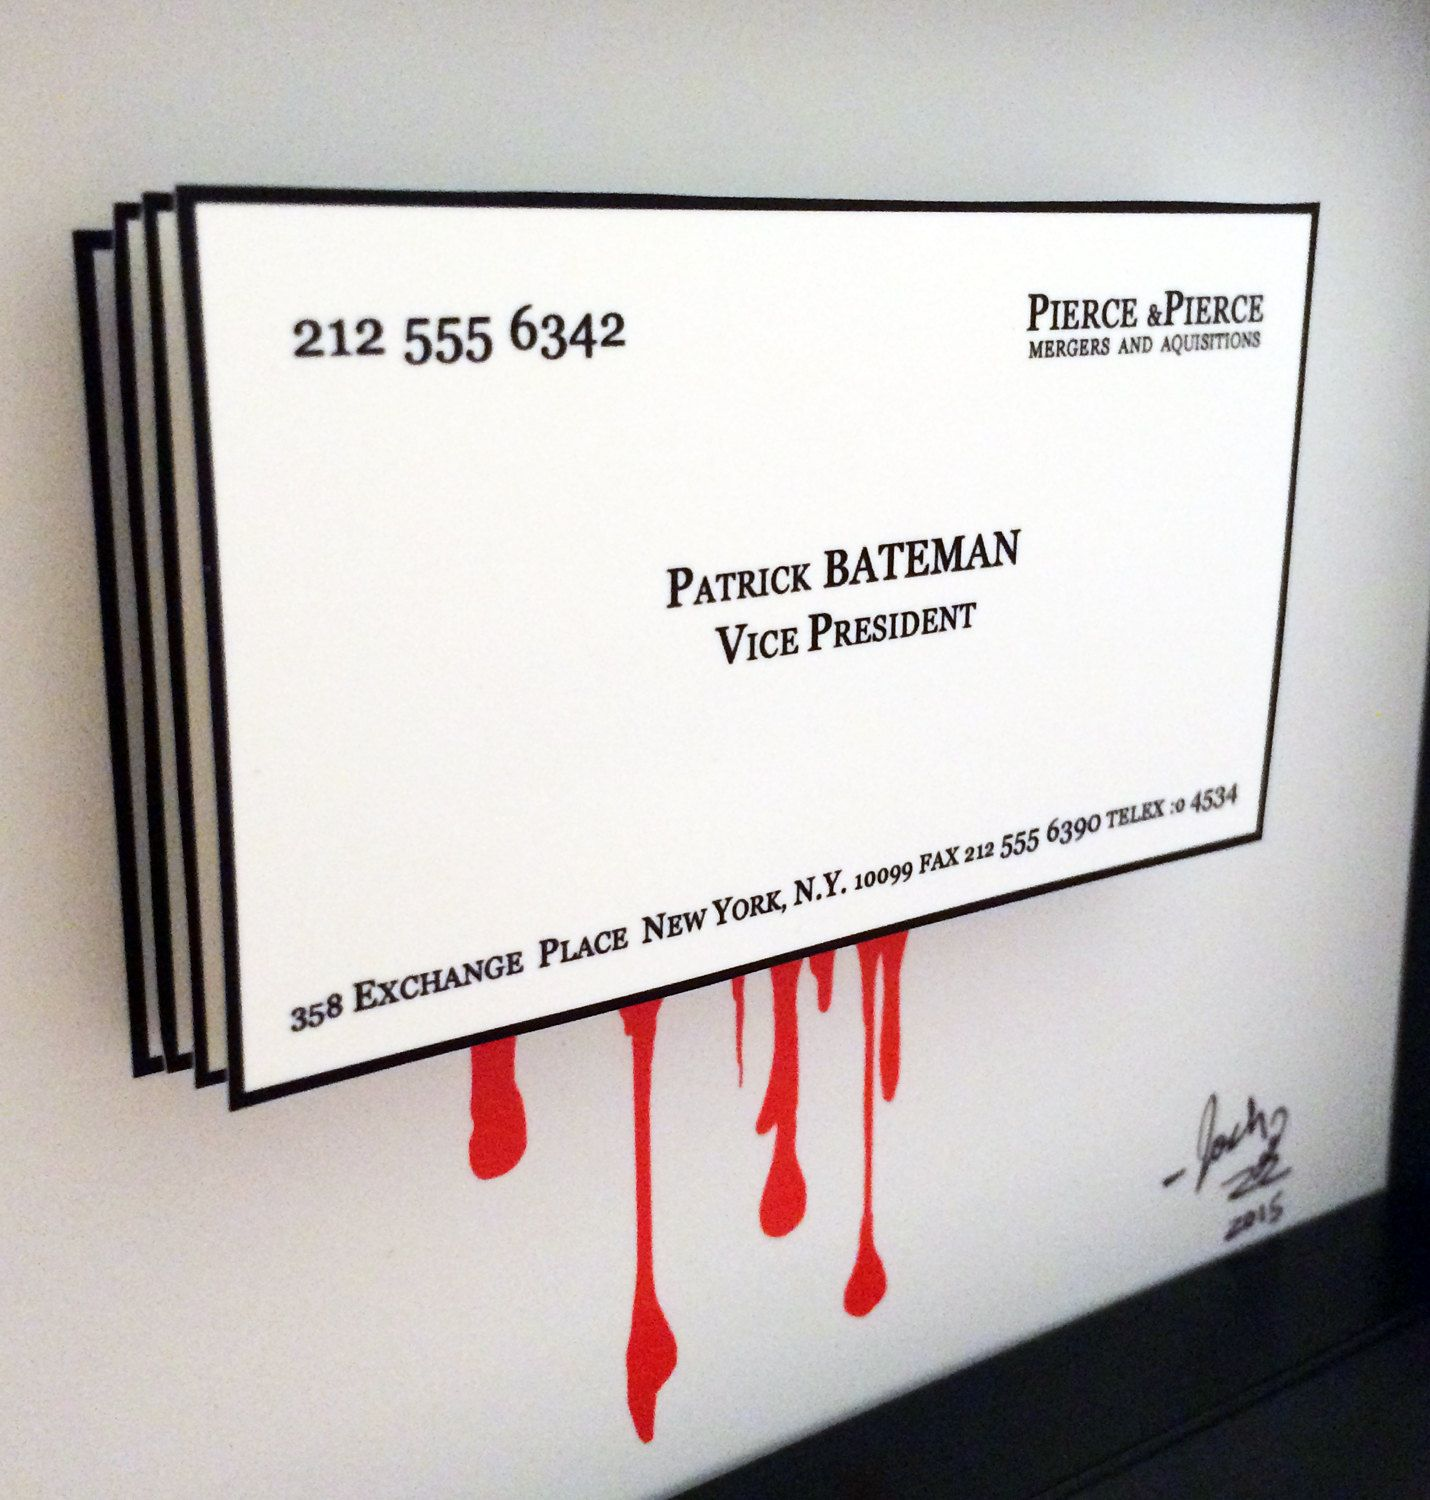 American psycho patrick bateman business card 3d art pinterest american psycho patrick bateman business card 3d art 3000 usd by popsicart colourmoves